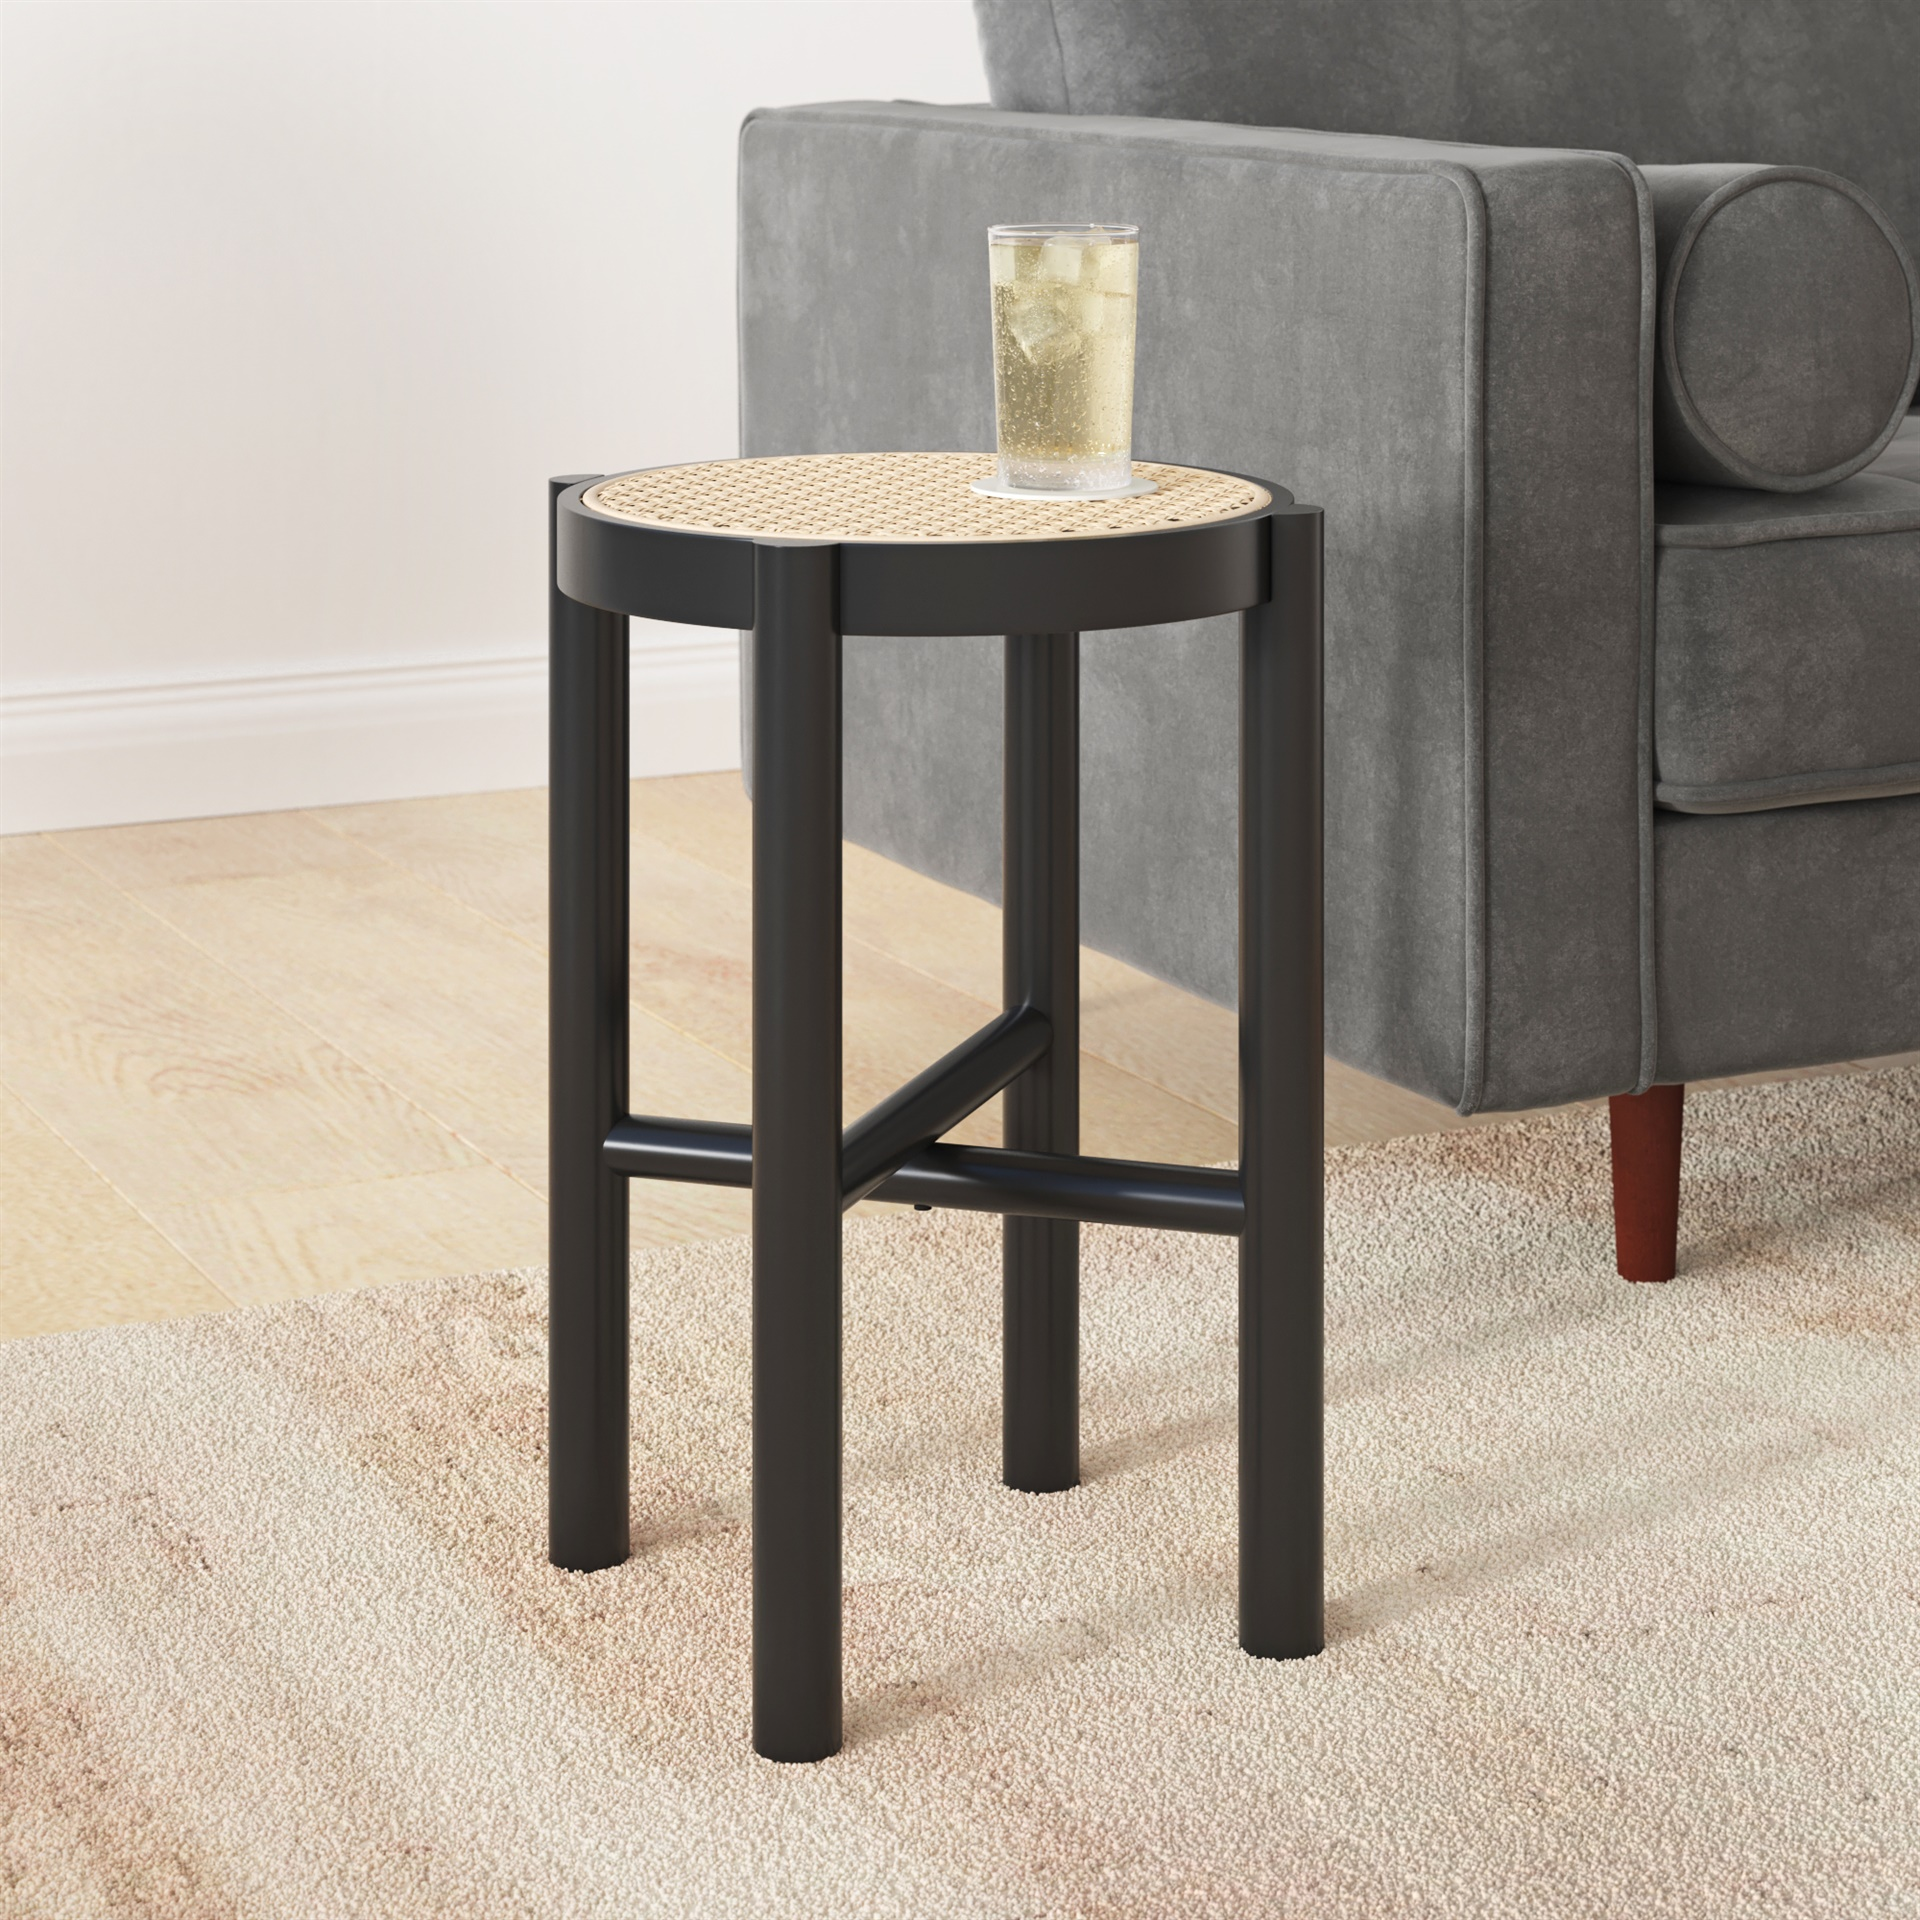 mango wood table, end table, side table, accent table from inmod.com